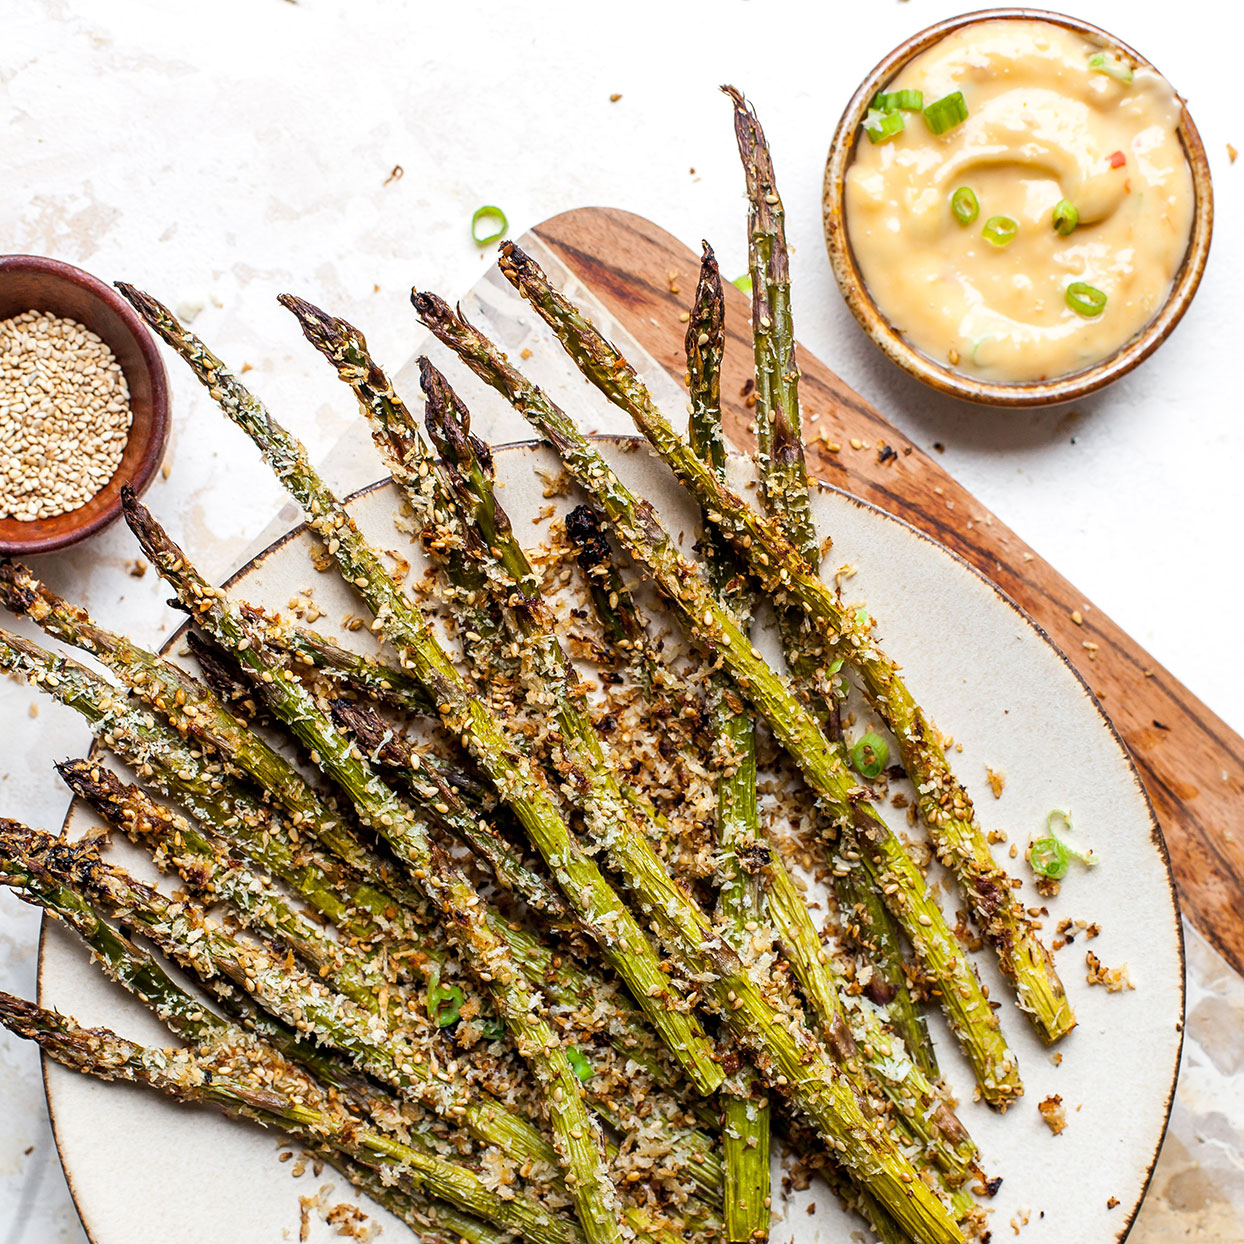 Warm from the oven, these crunchy asparagus spears make a tasty side dish or cocktail nibble. Before being coated in panko breadcrumbs they are rolled in a flavorful sesame-miso sauce that doubles as a simple dipping sauce.